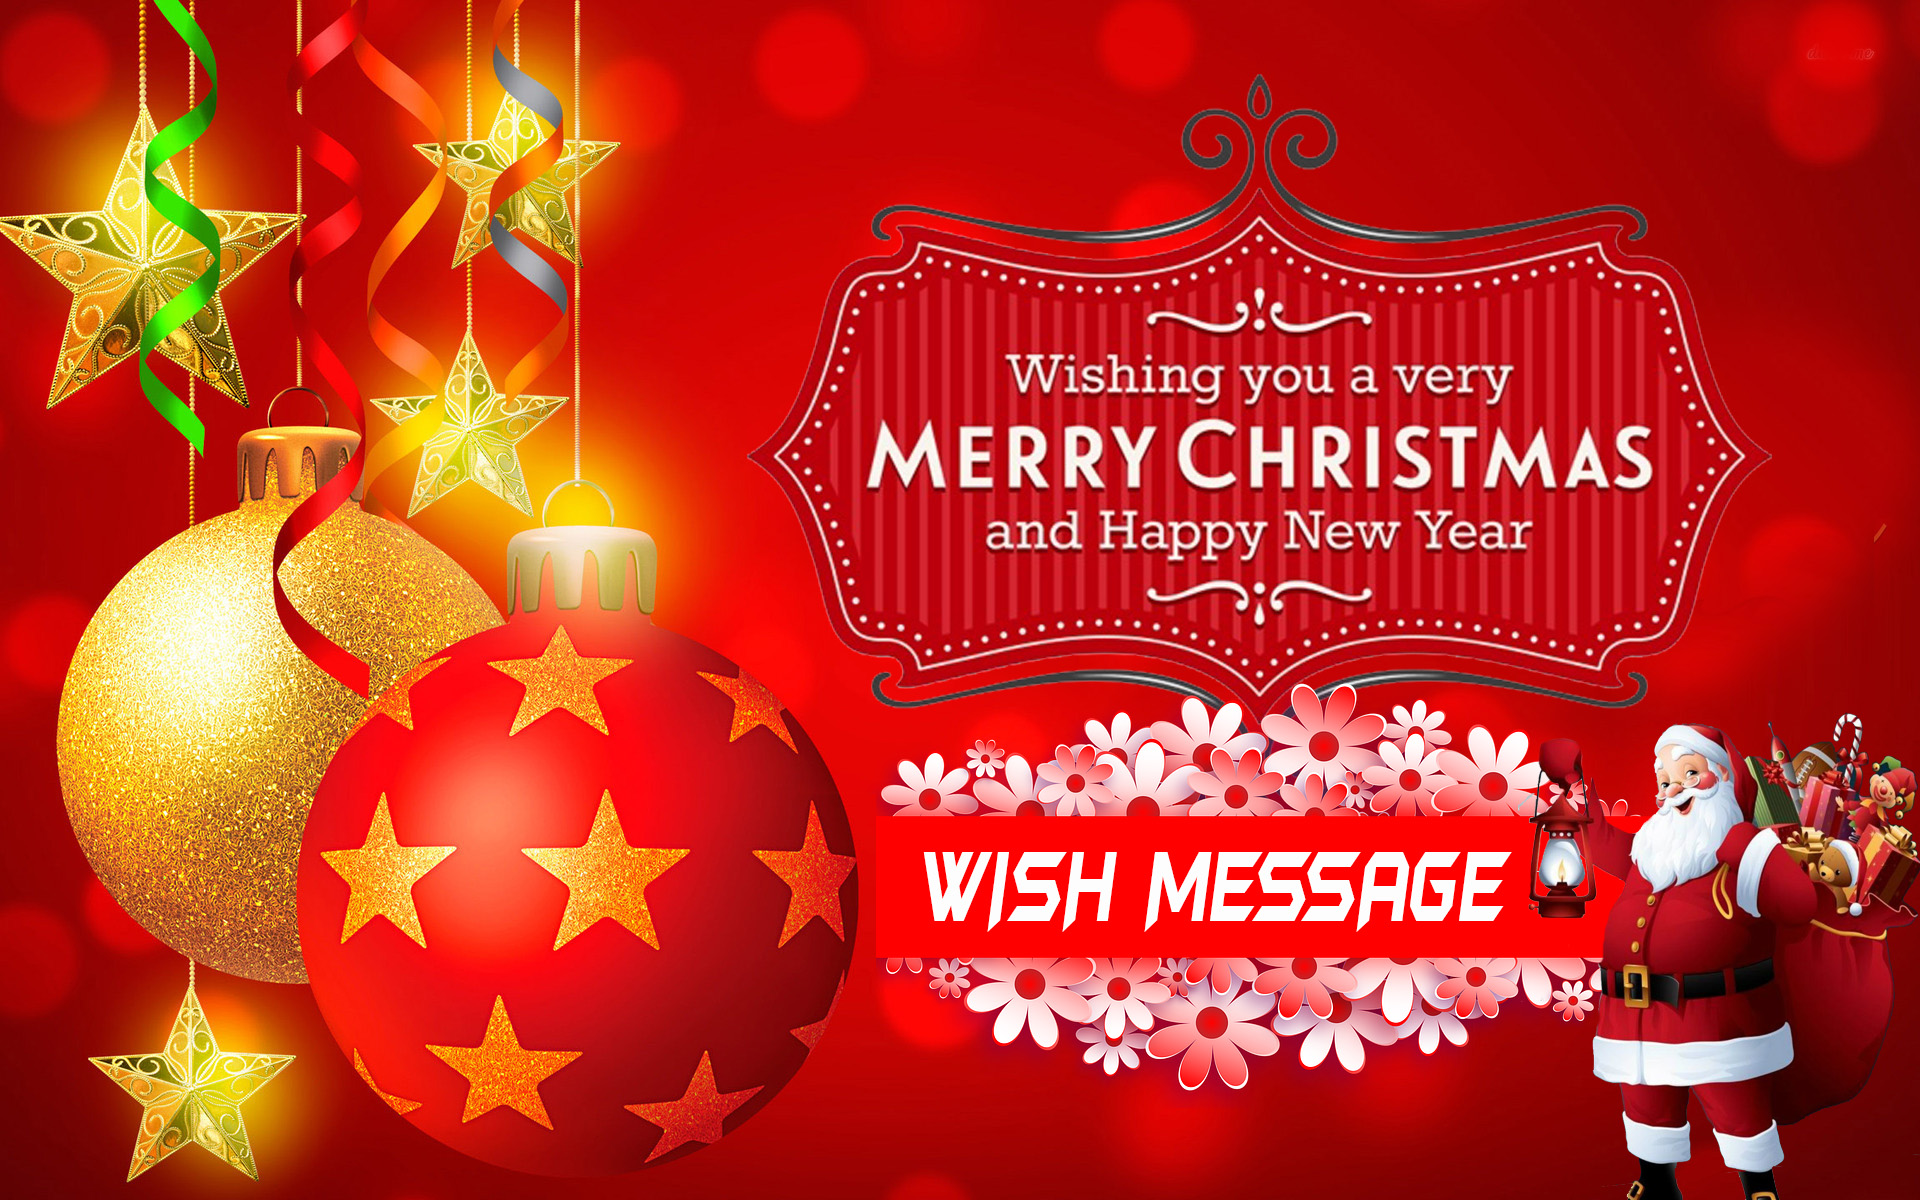 marry Christmas wishes